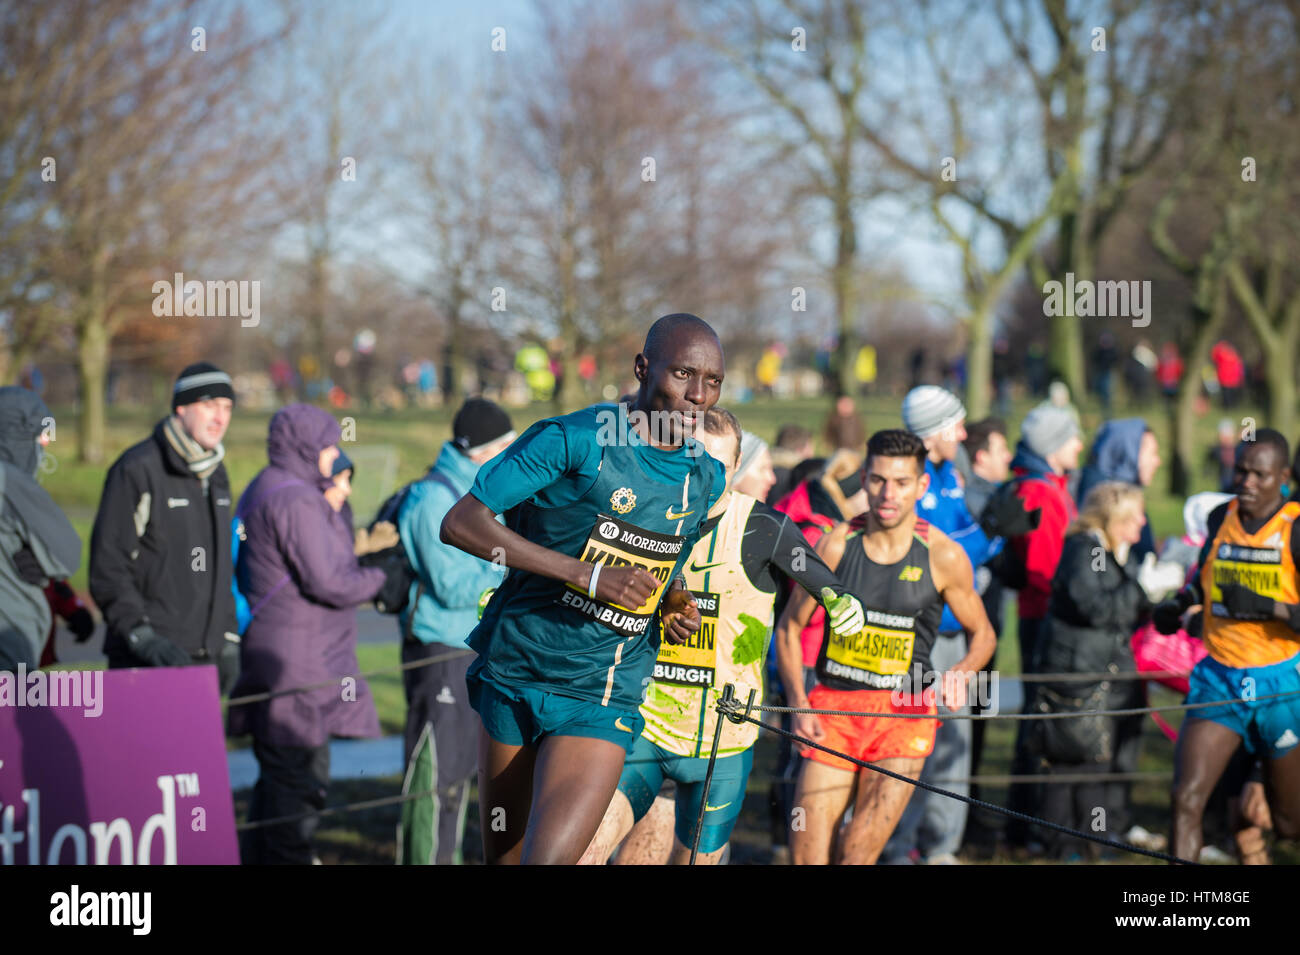 EDINBURGH, SCOTLAND, UK - January 10, 2015 - elite athletes compete in the Great Edinburgh Cross Country Run event, Stock Photo